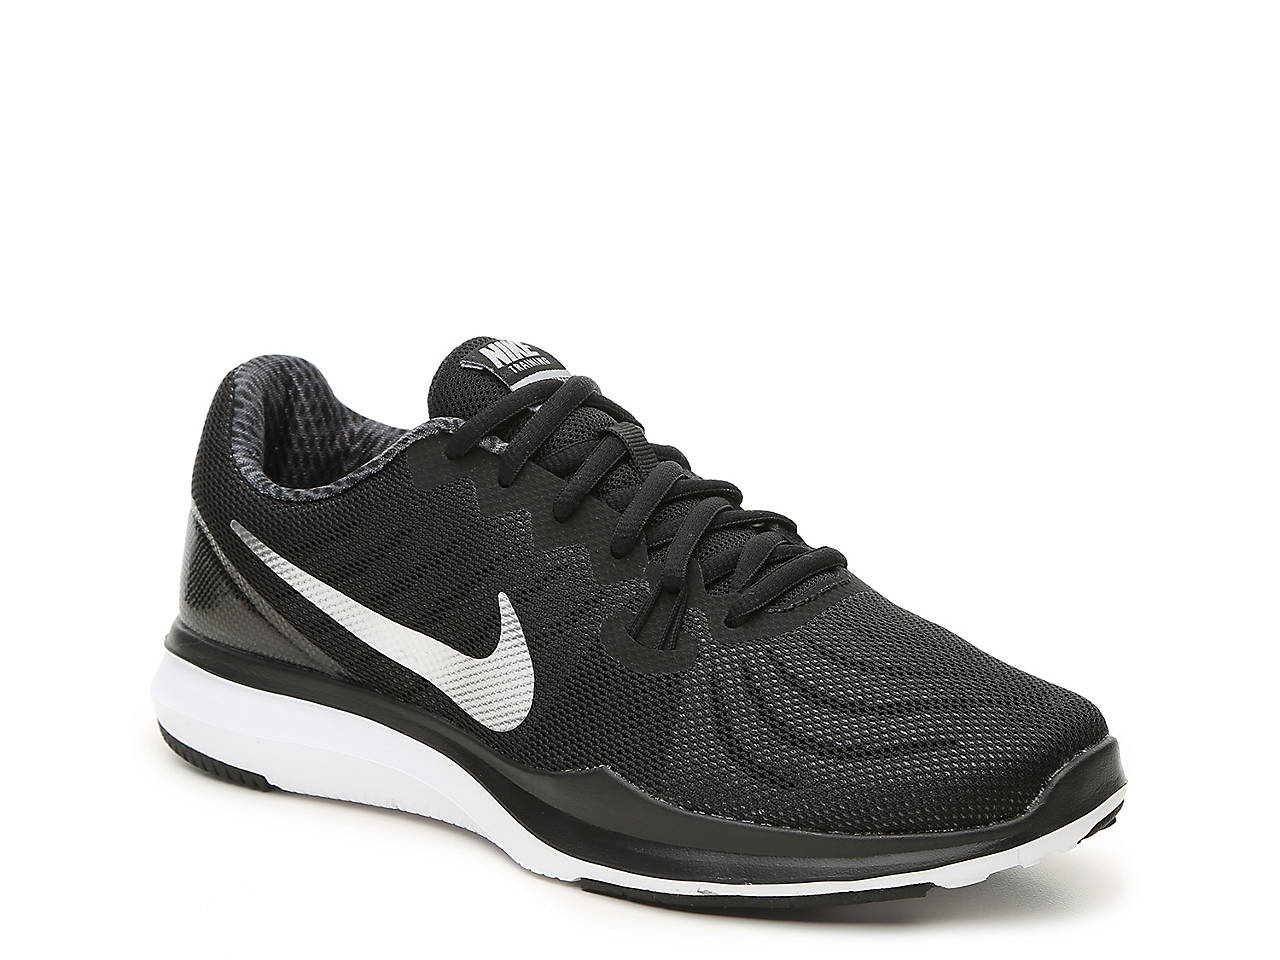 very cheap quality free shipping for sale Women's Nike In-Season TR 7 Metallic Training Shoes fast delivery cheap price clearance professional great deals cheap online UY1cnc